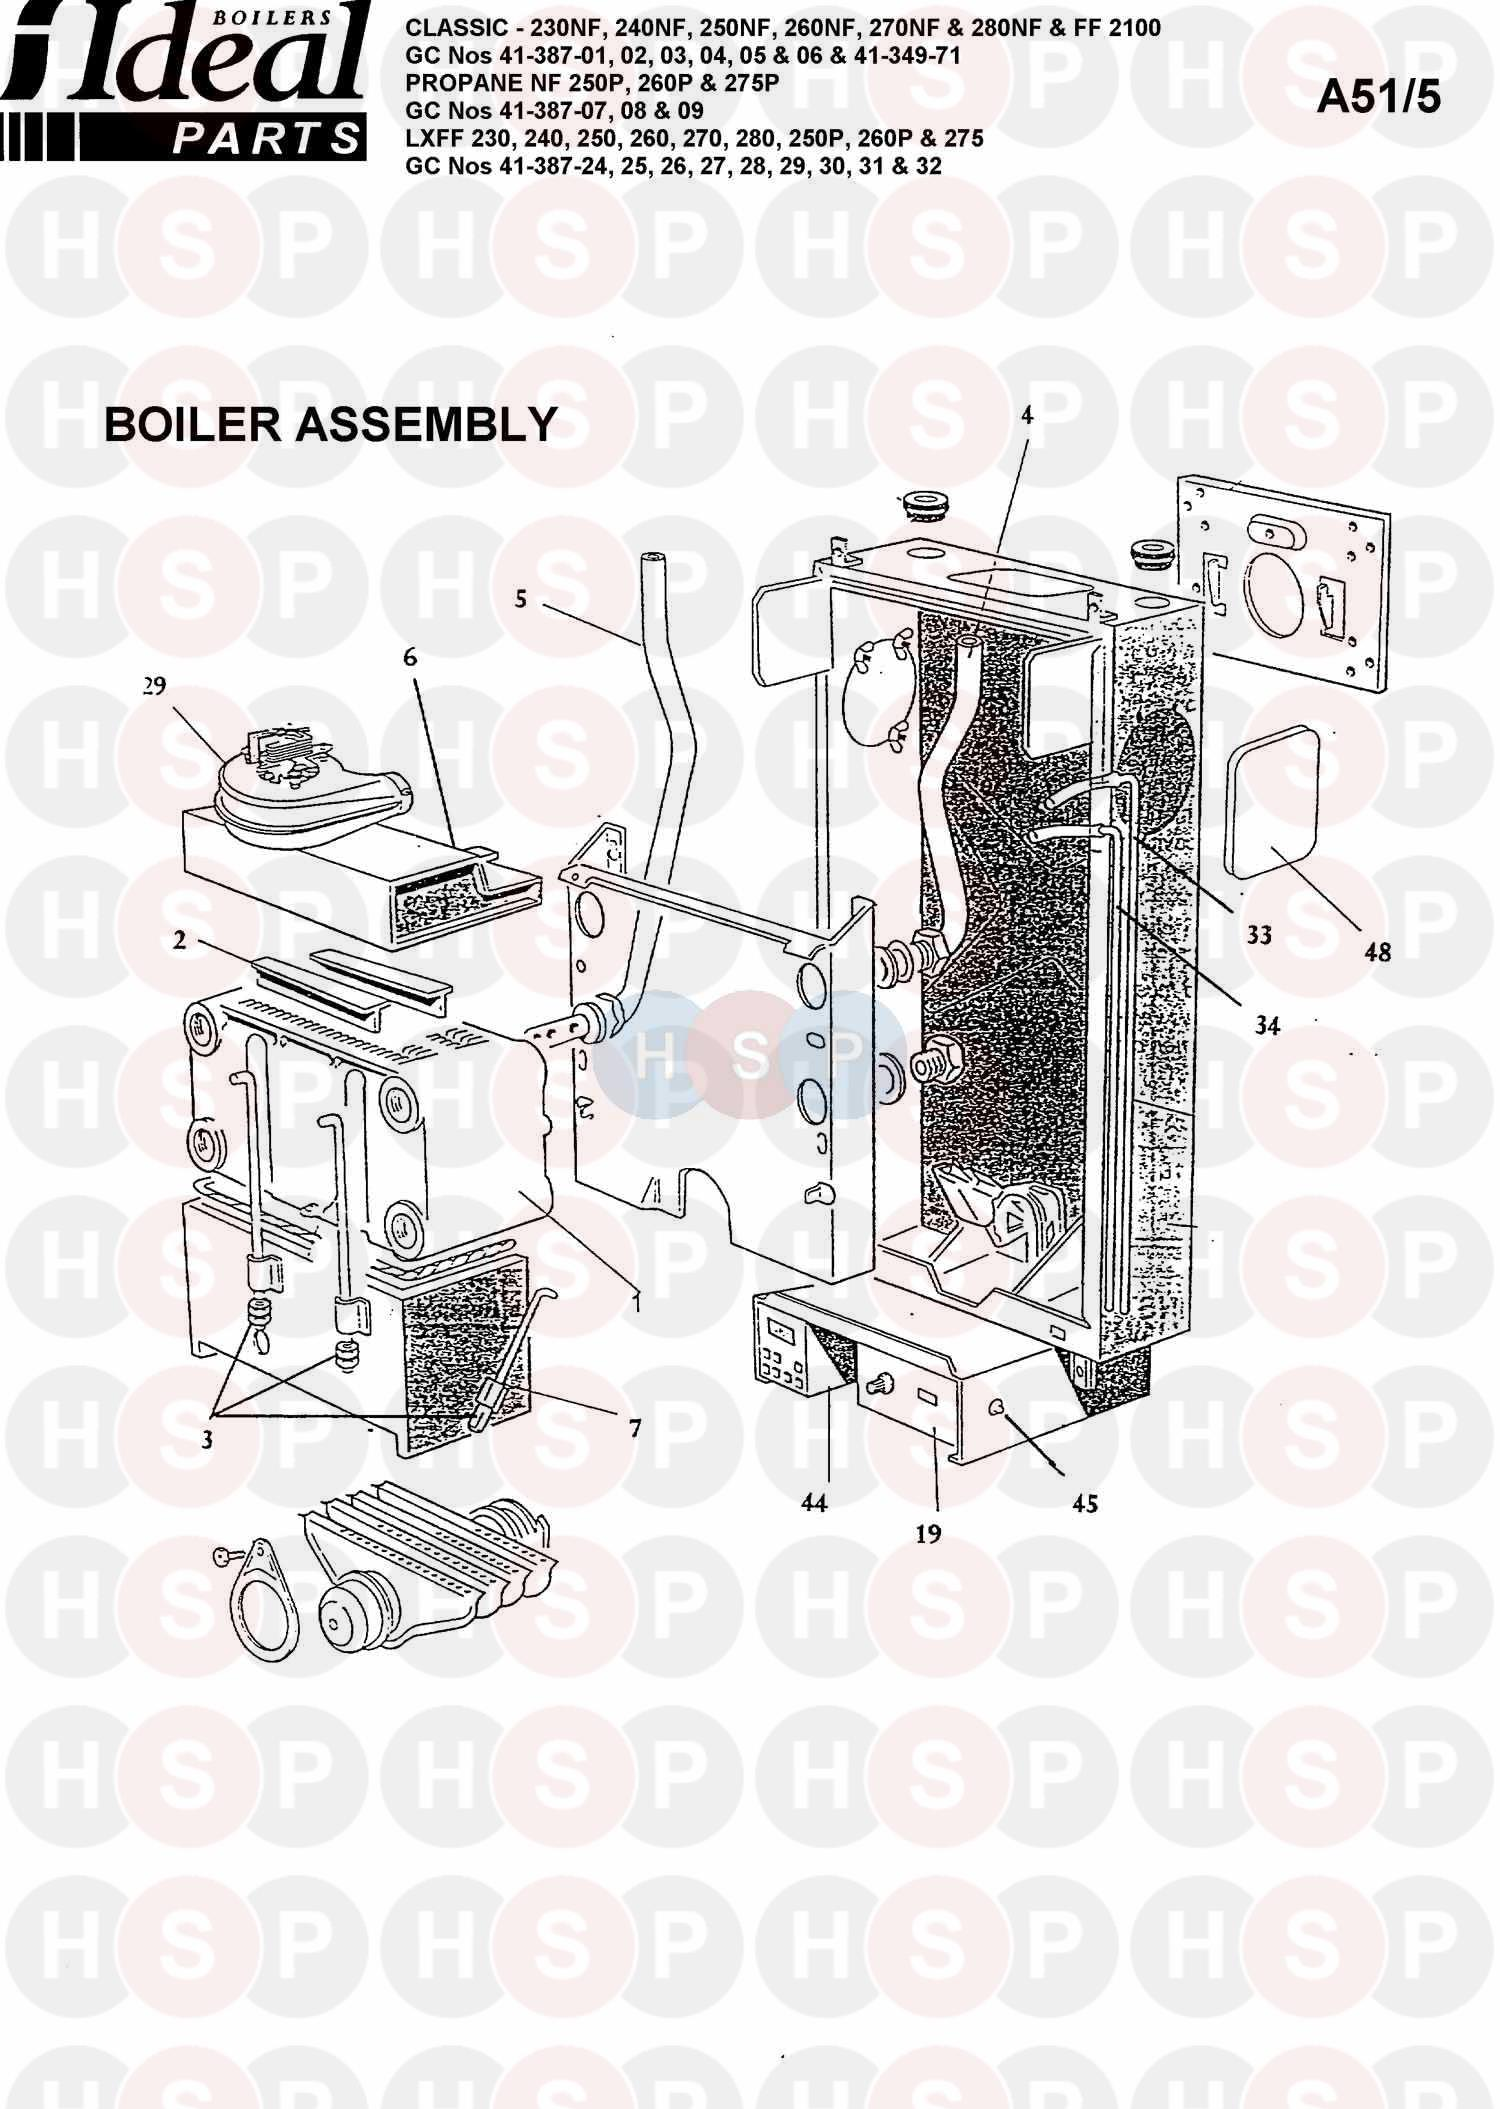 ideal classic 240nf  boiler assembly 1  diagram